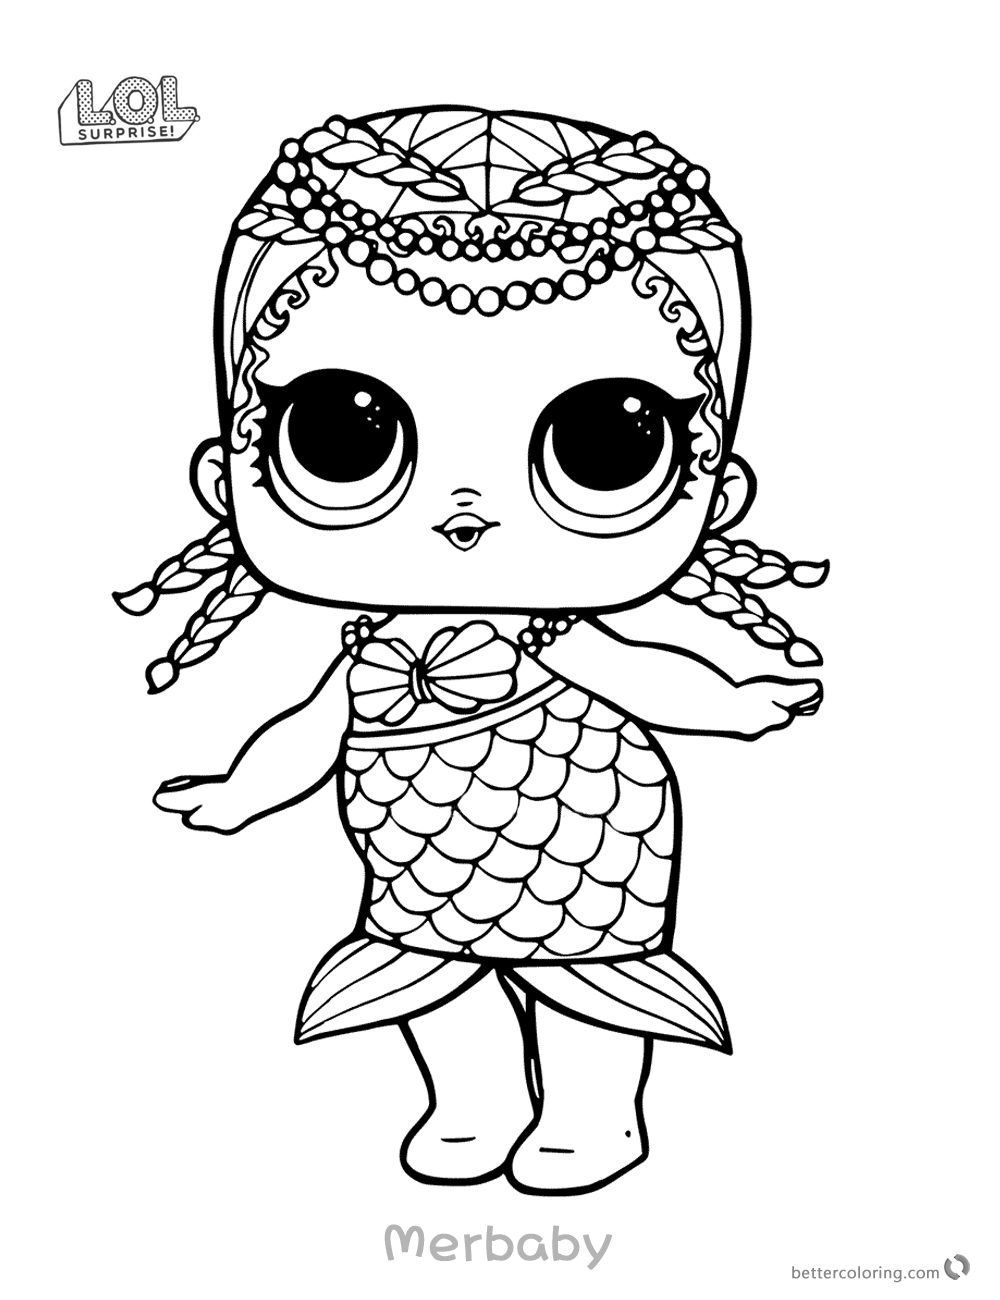 Merbaby lol dolls coloring pages